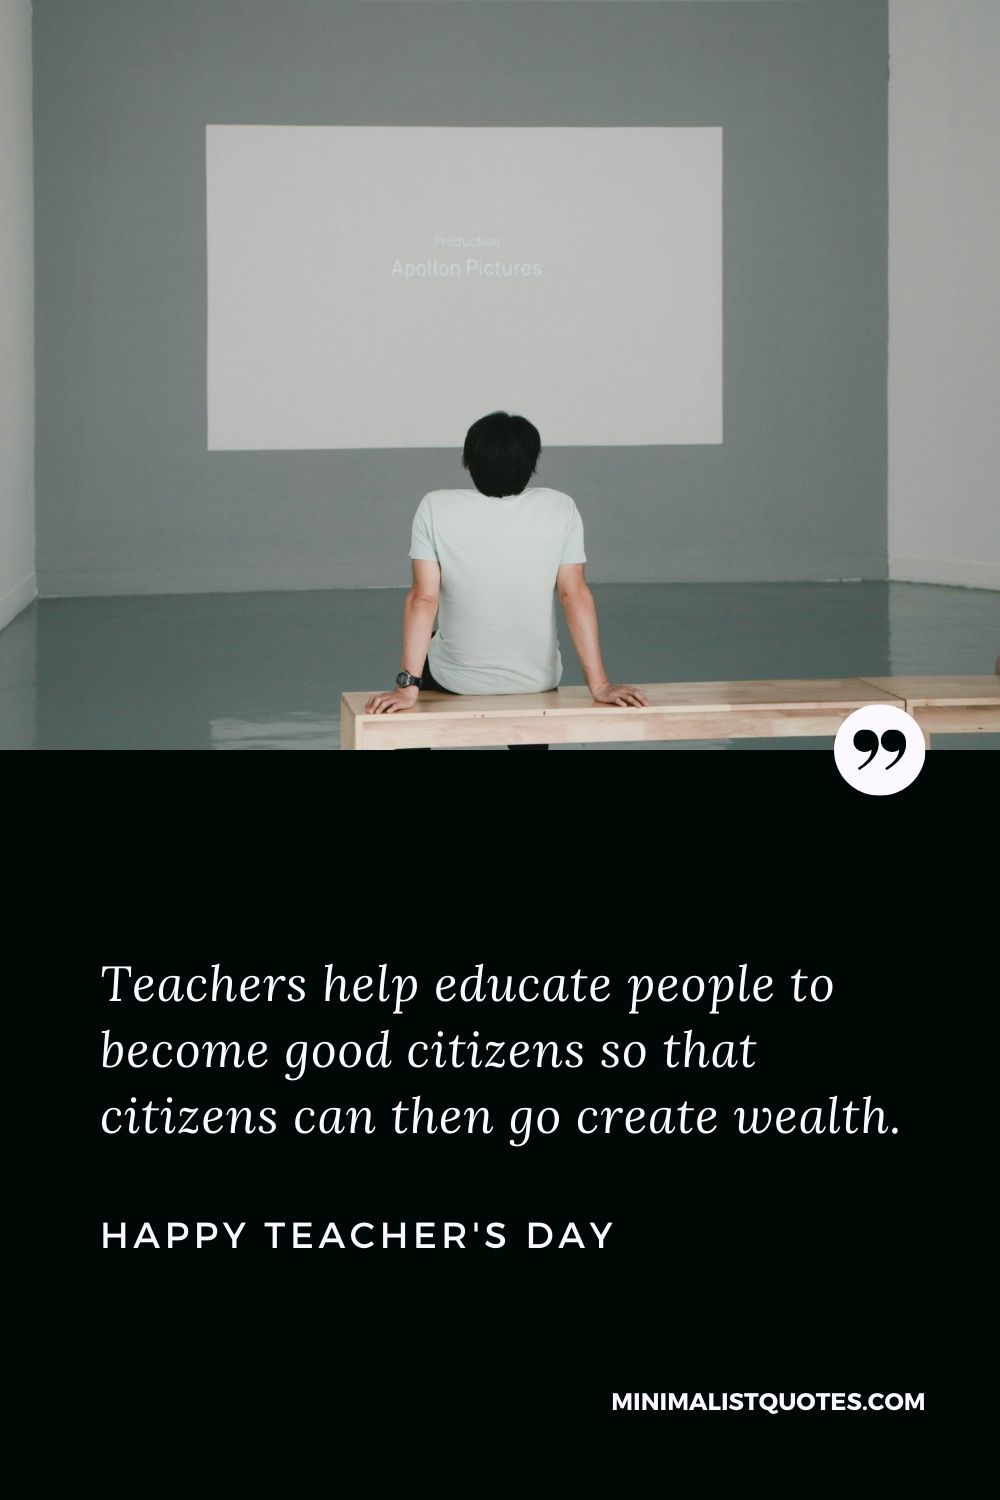 Teacher's Day wish, message & quote: Teachers help educate people to become good citizens so that citizens can then go create wealth. Happy Teacher's Day!